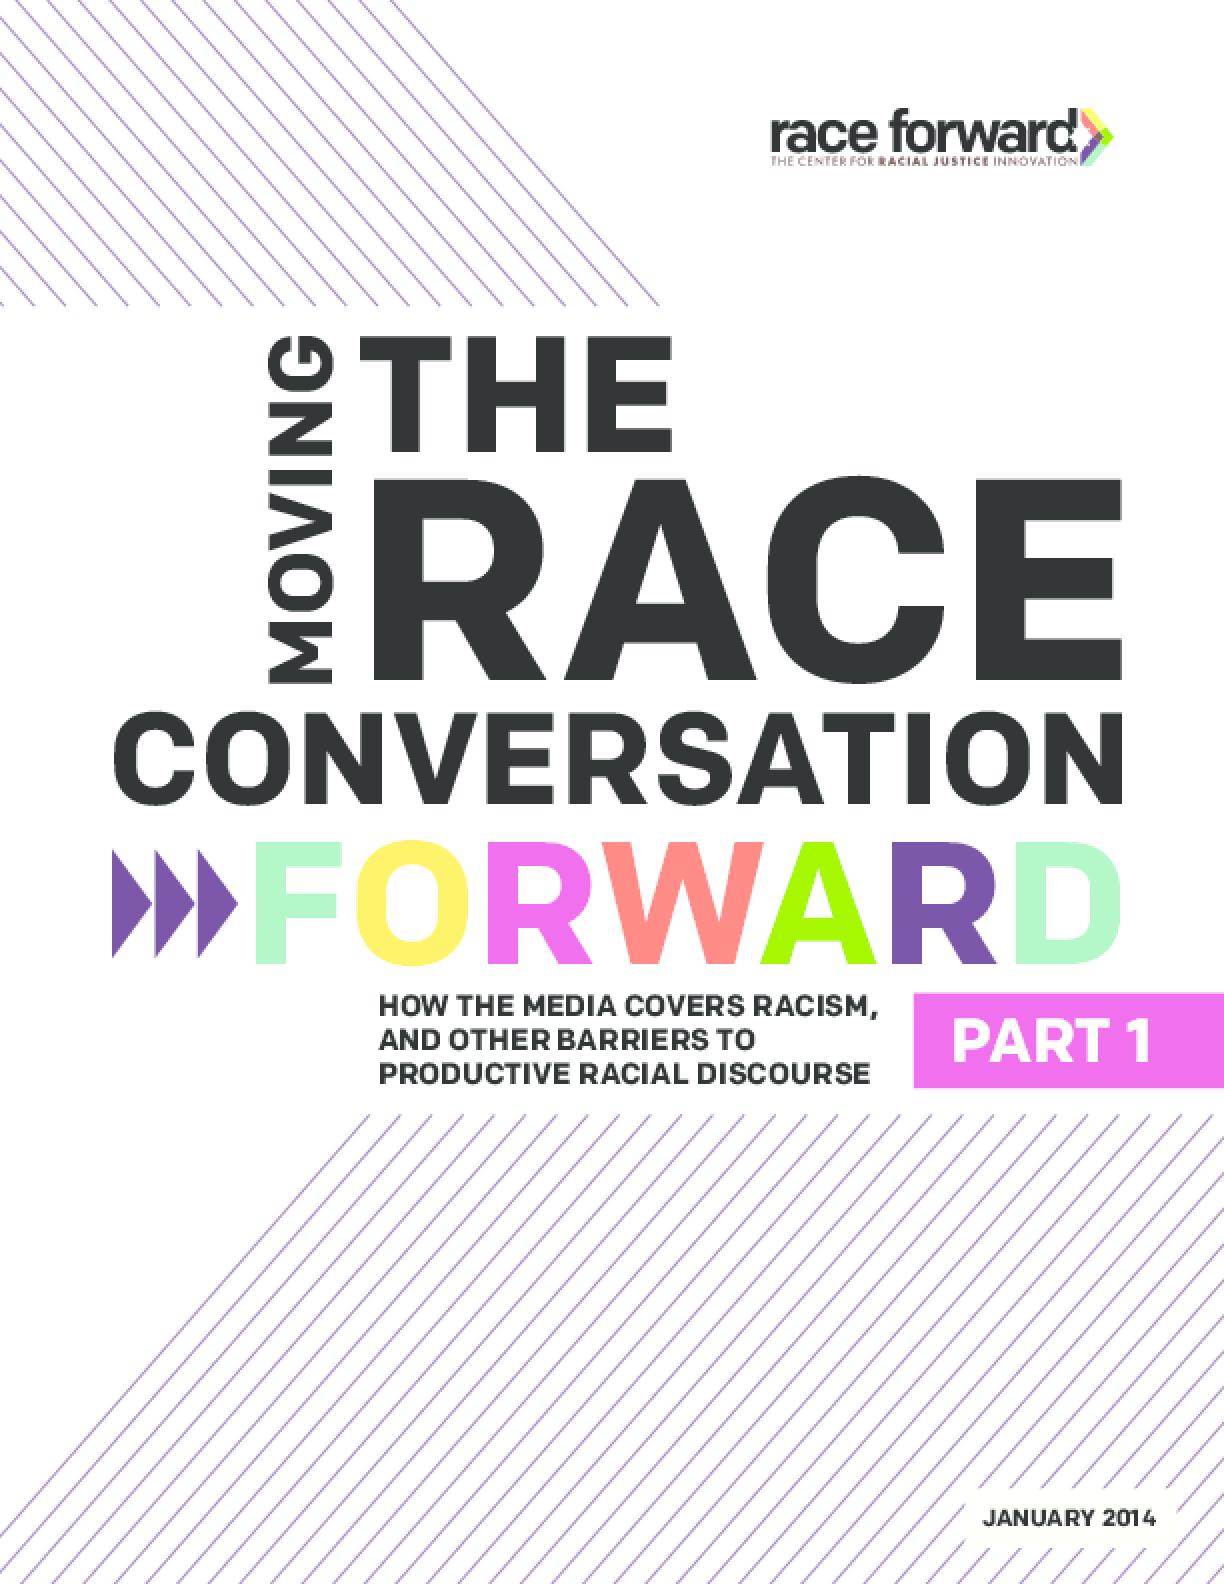 Moving the Race Conversation Forward: How the Media Covers Racism, and Other Barriers to Productive Racial Discourse, Pt. 1